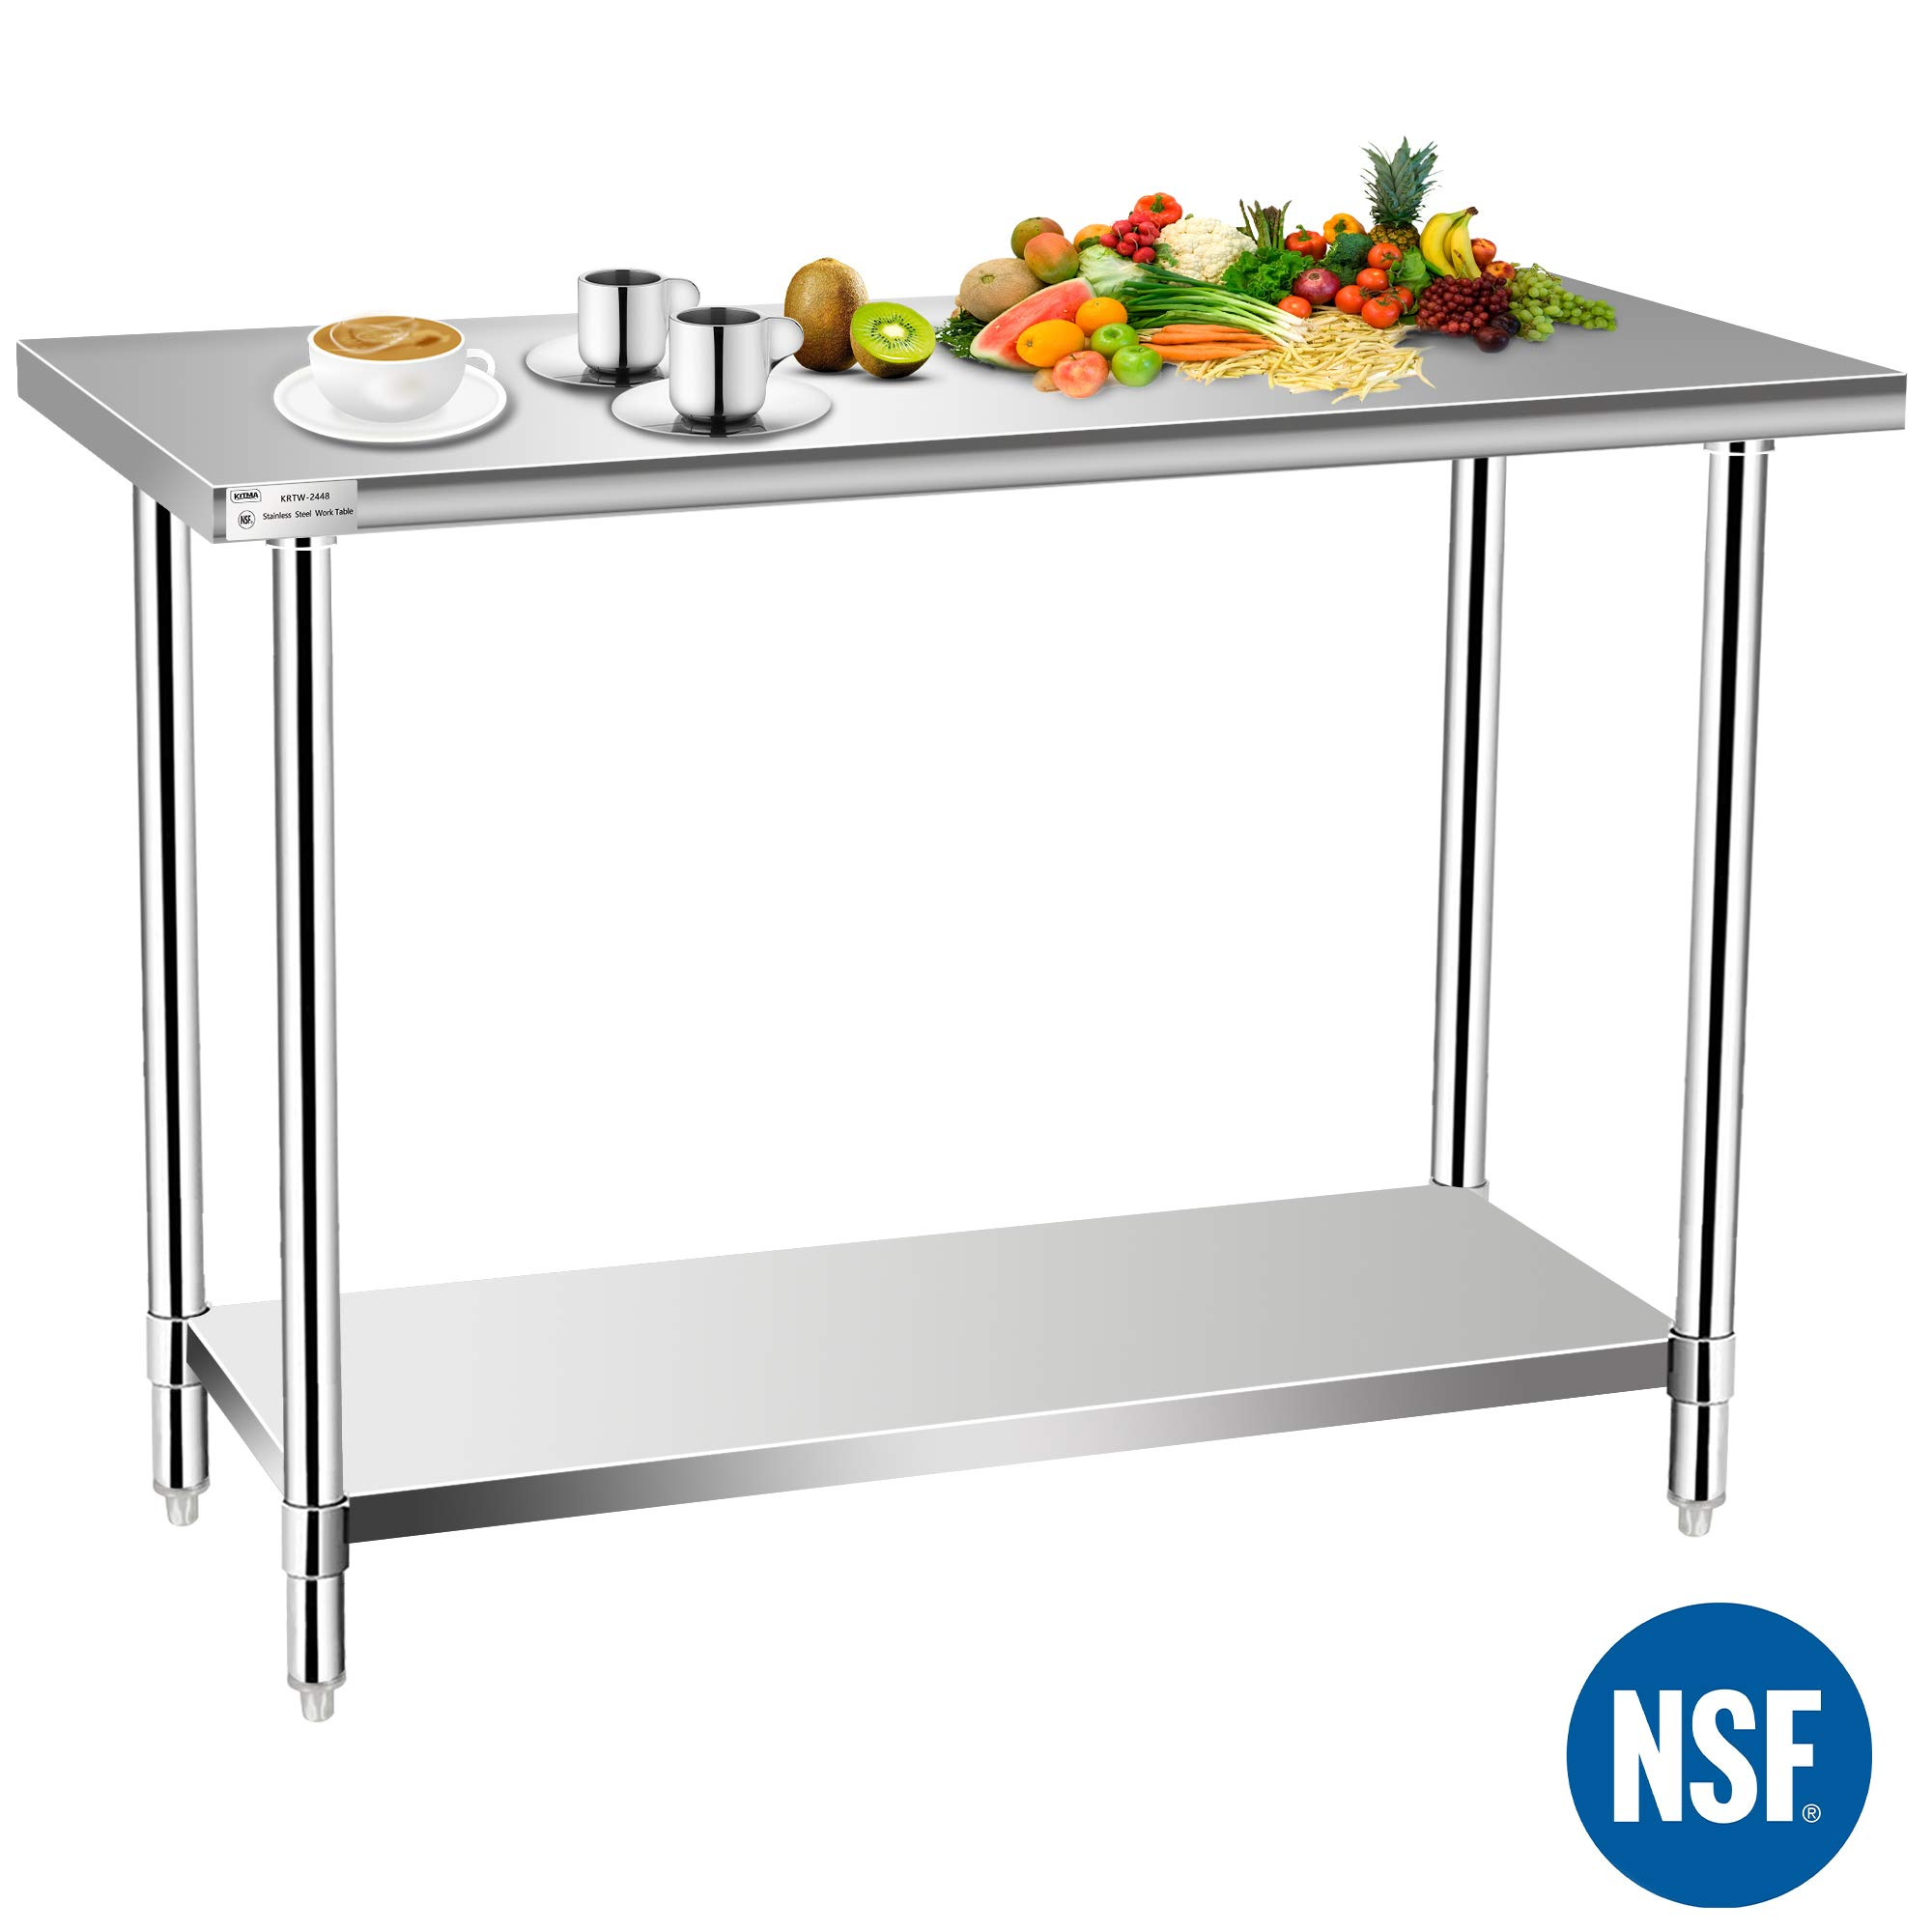 Commercial Kitchen Prep & Work Table, KITMA Stainless Steel Food Prep Table, 48 x 24 Inches,NSF